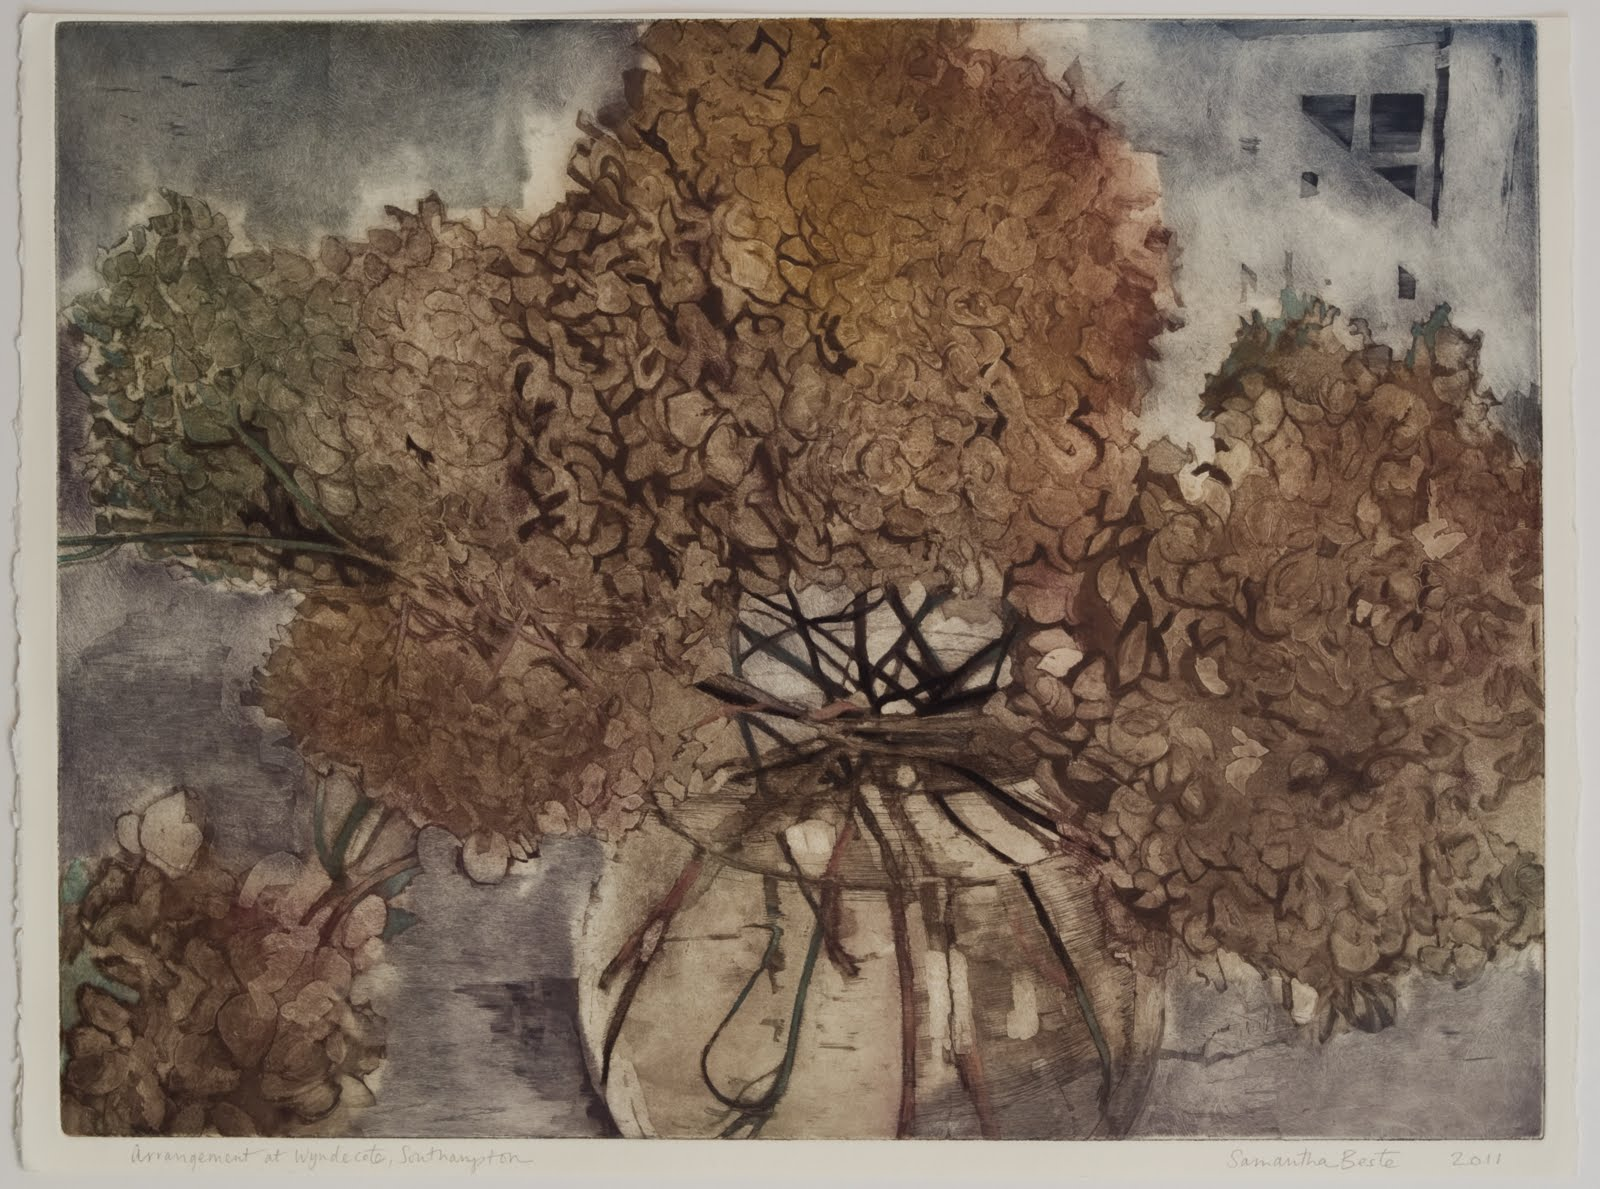 """Arrangement at Wyndecote"", Etching/aquatint with colored pencil, 18 x 23 in."